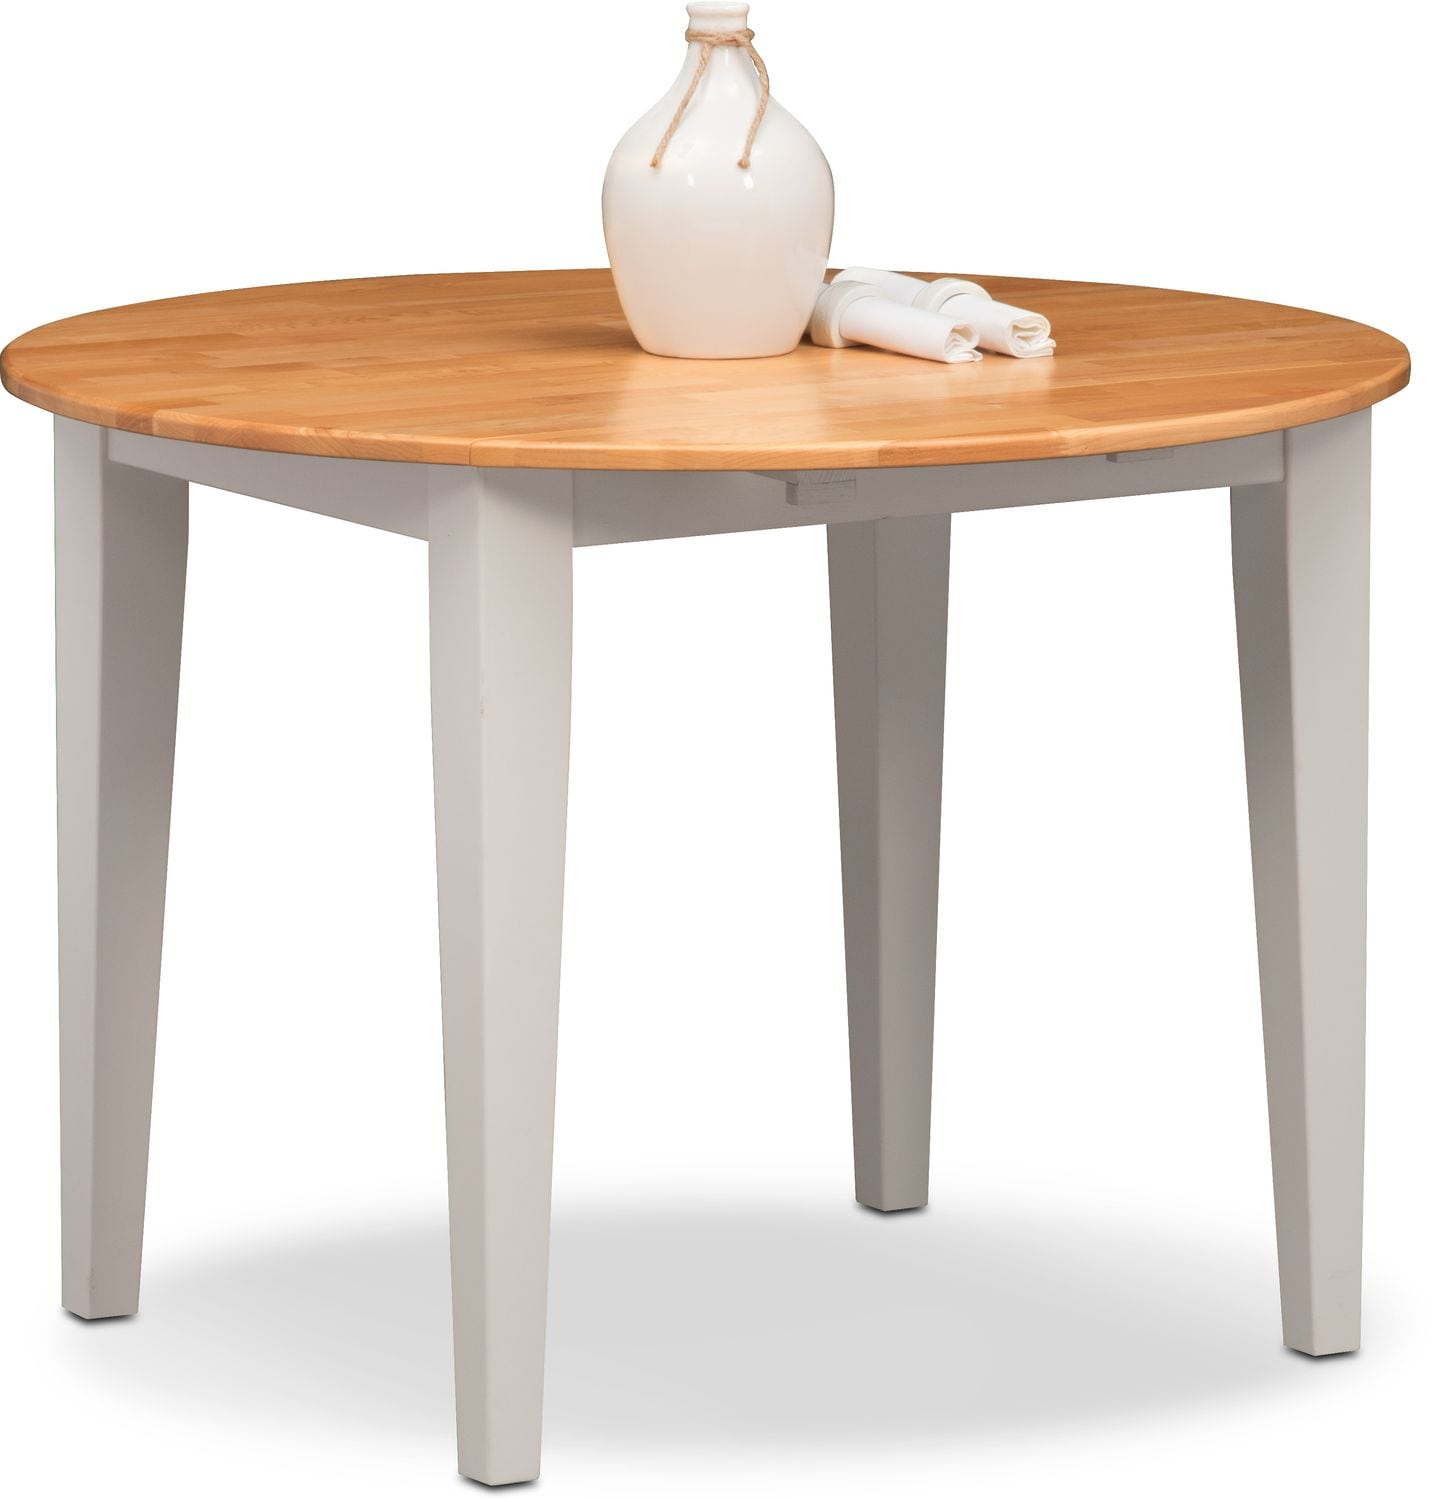 Dining Room Furniture   Nantucket Drop Leaf Table   Maple And White